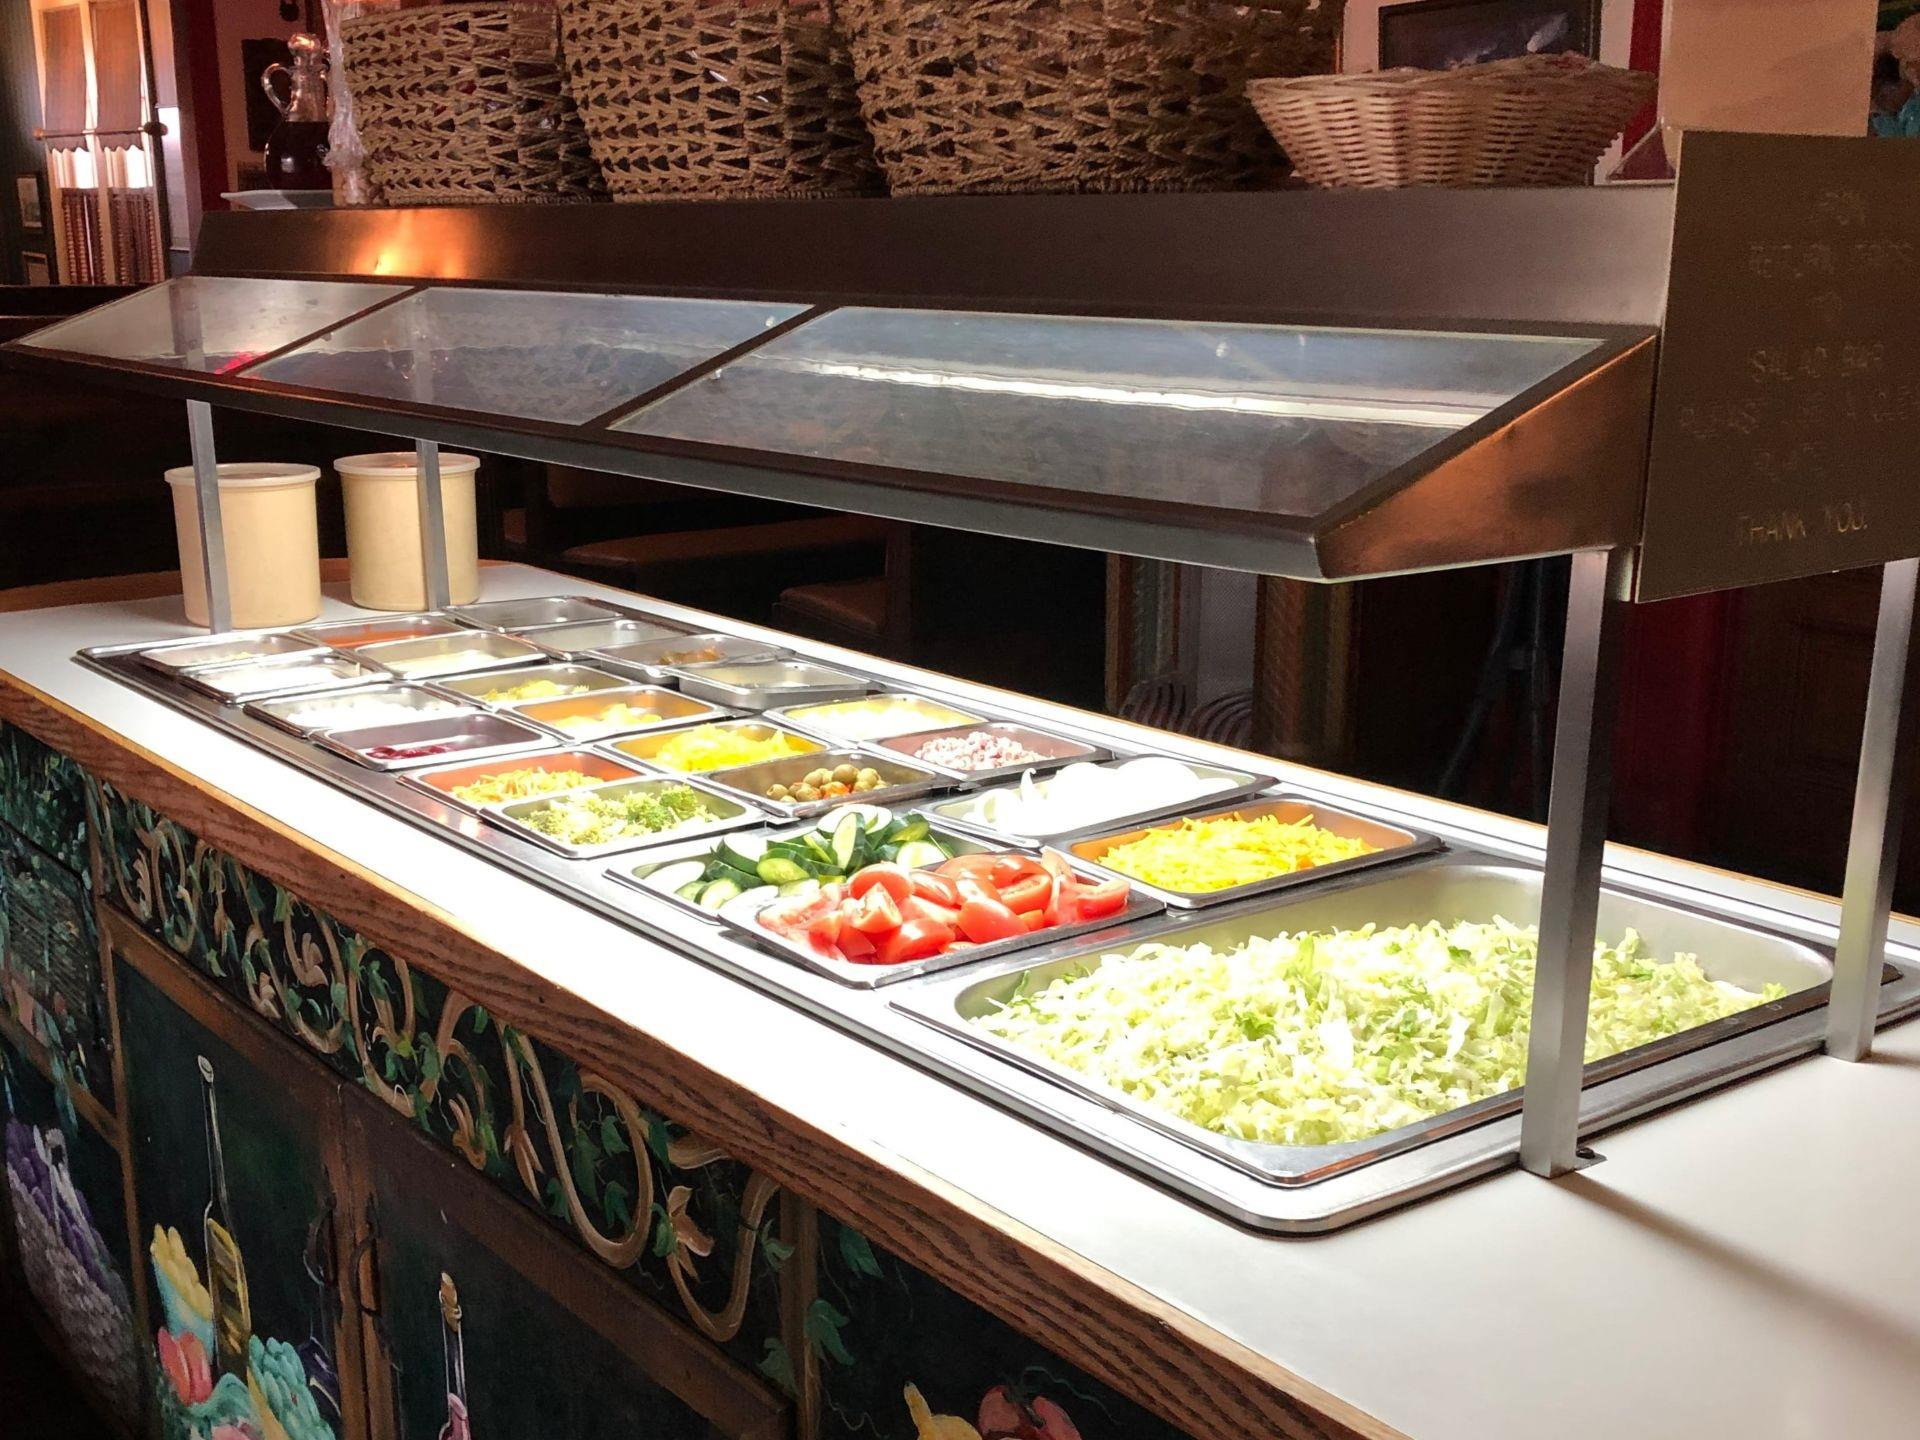 Salad bar setup with assorted toppings in containers